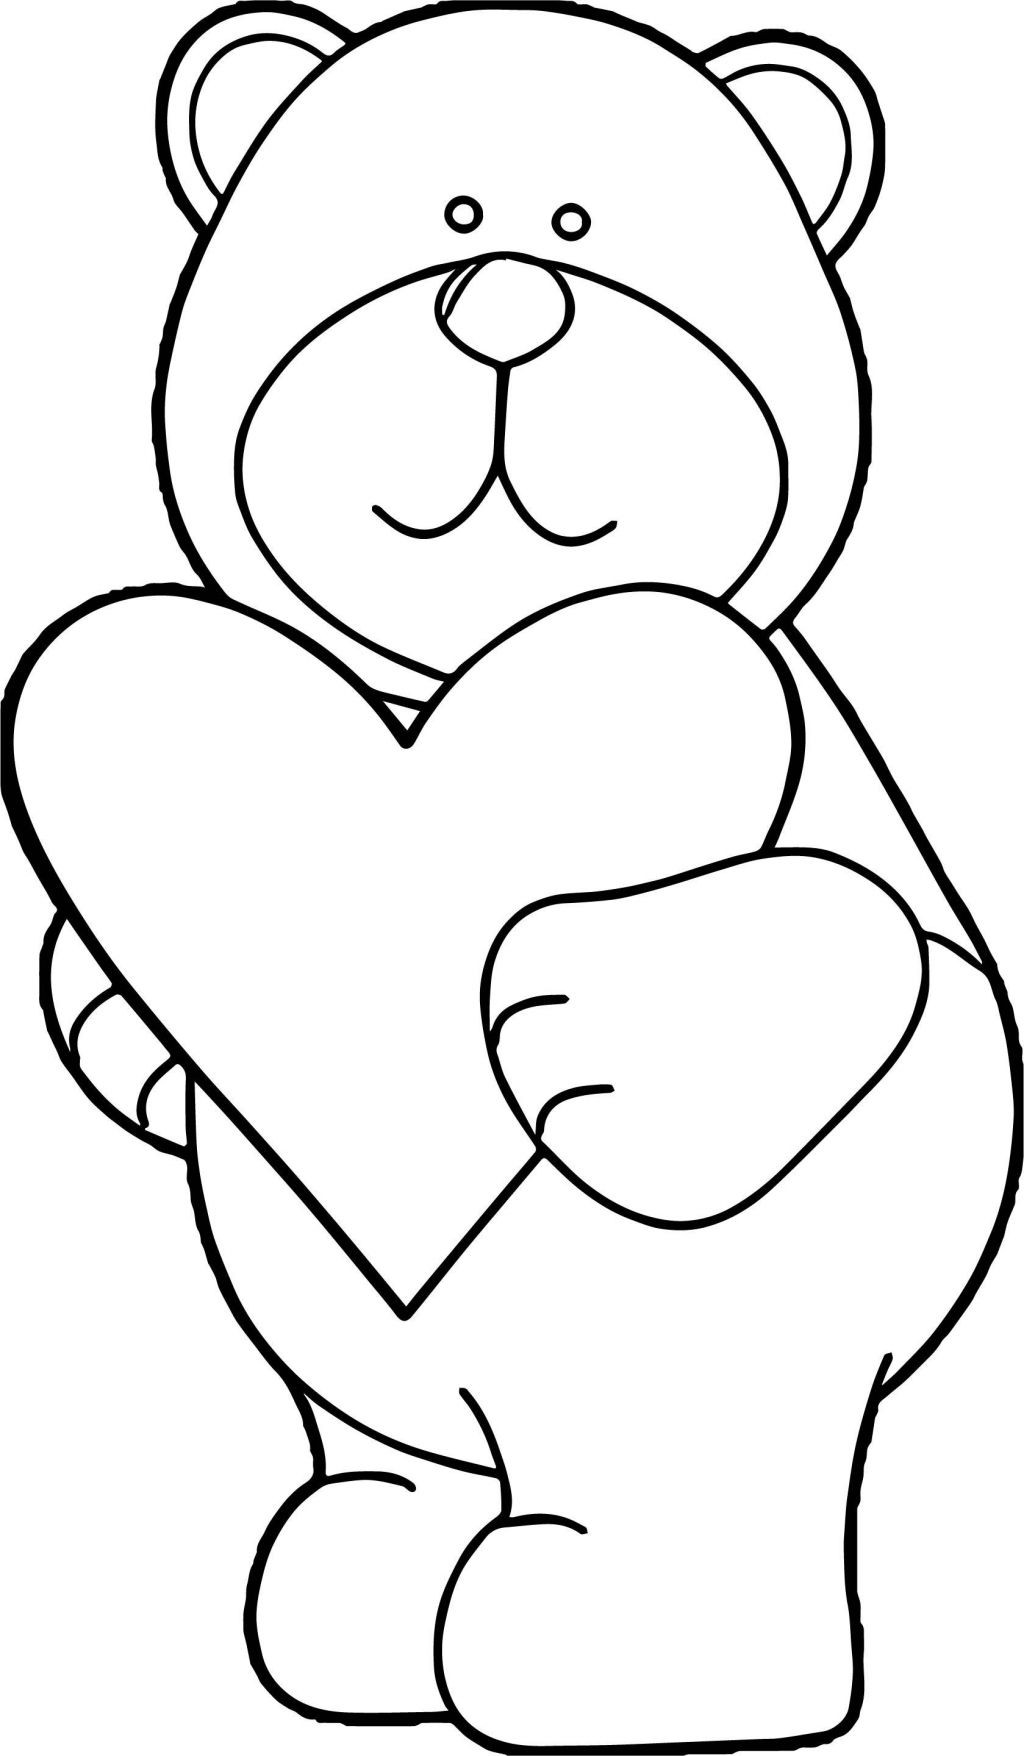 Human Heart Coloring Worksheet Coloring Pages Valentines Day Coloring Art